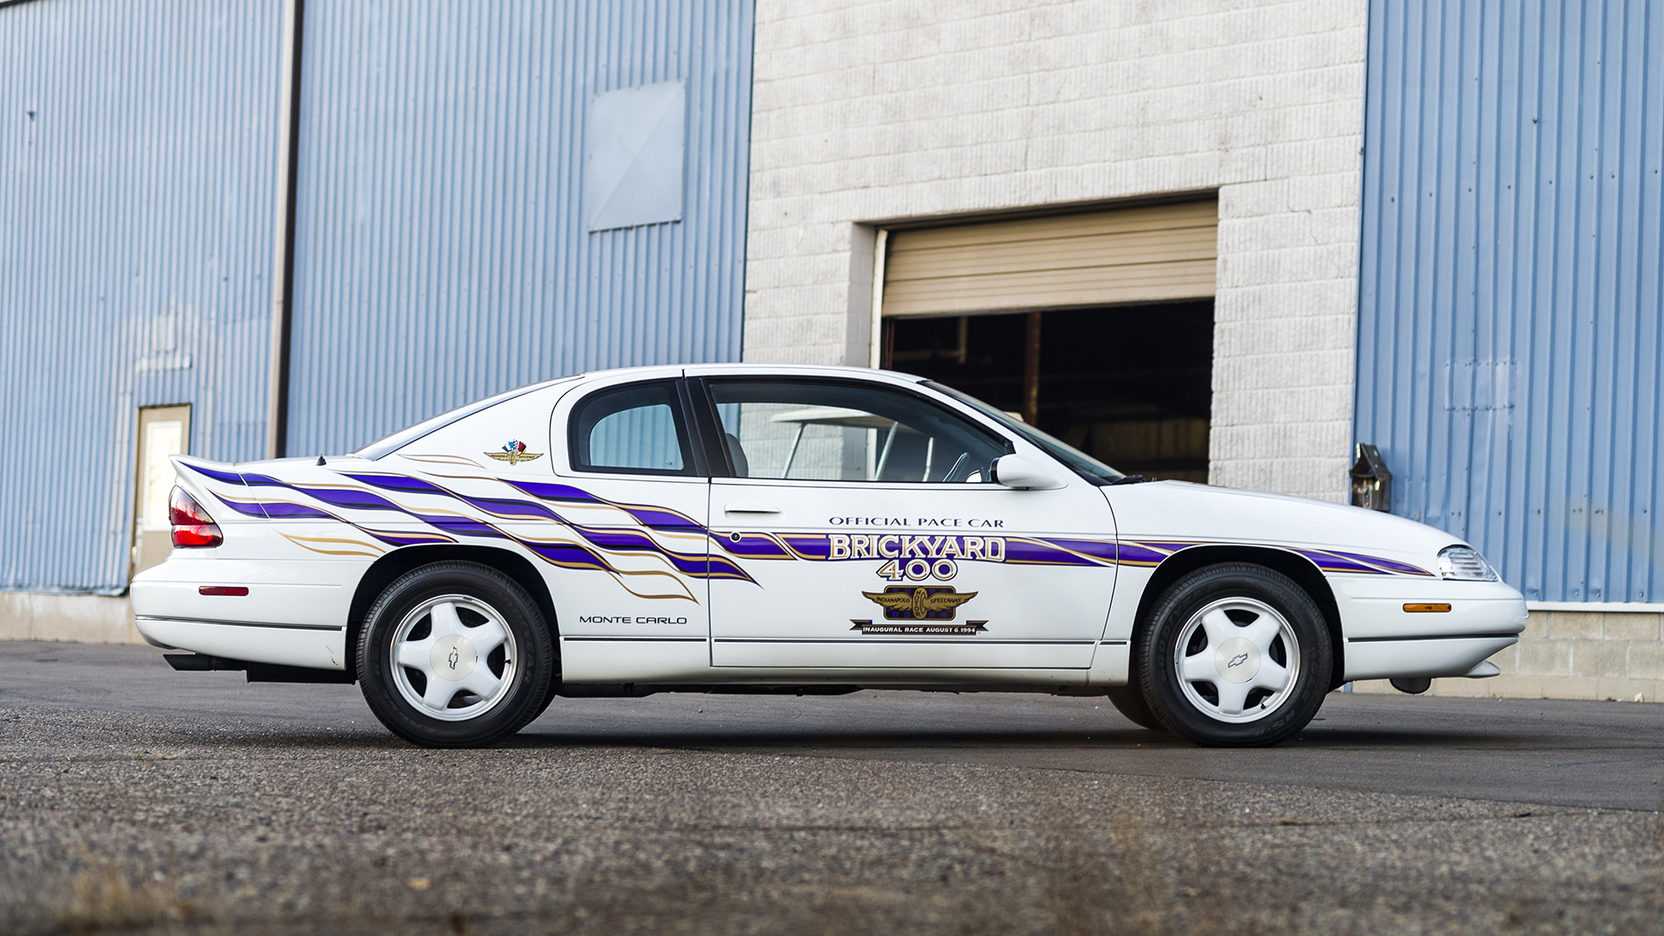 medium resolution of 1995 chevrolet monte carlo z34 pace car edition 8 full screen